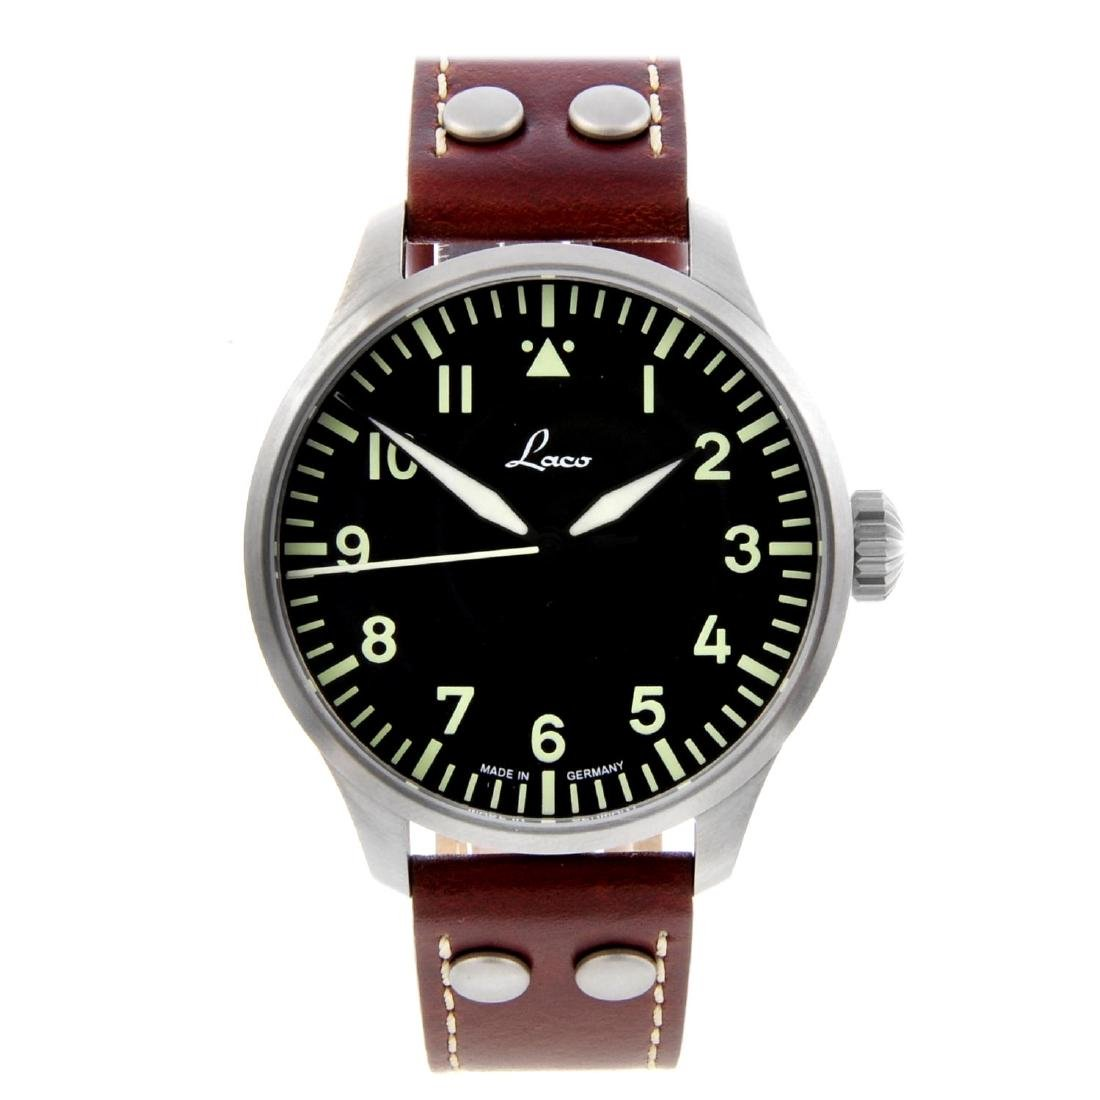 LACO - a gentleman's Augsburg 42 wrist watch. Stainless